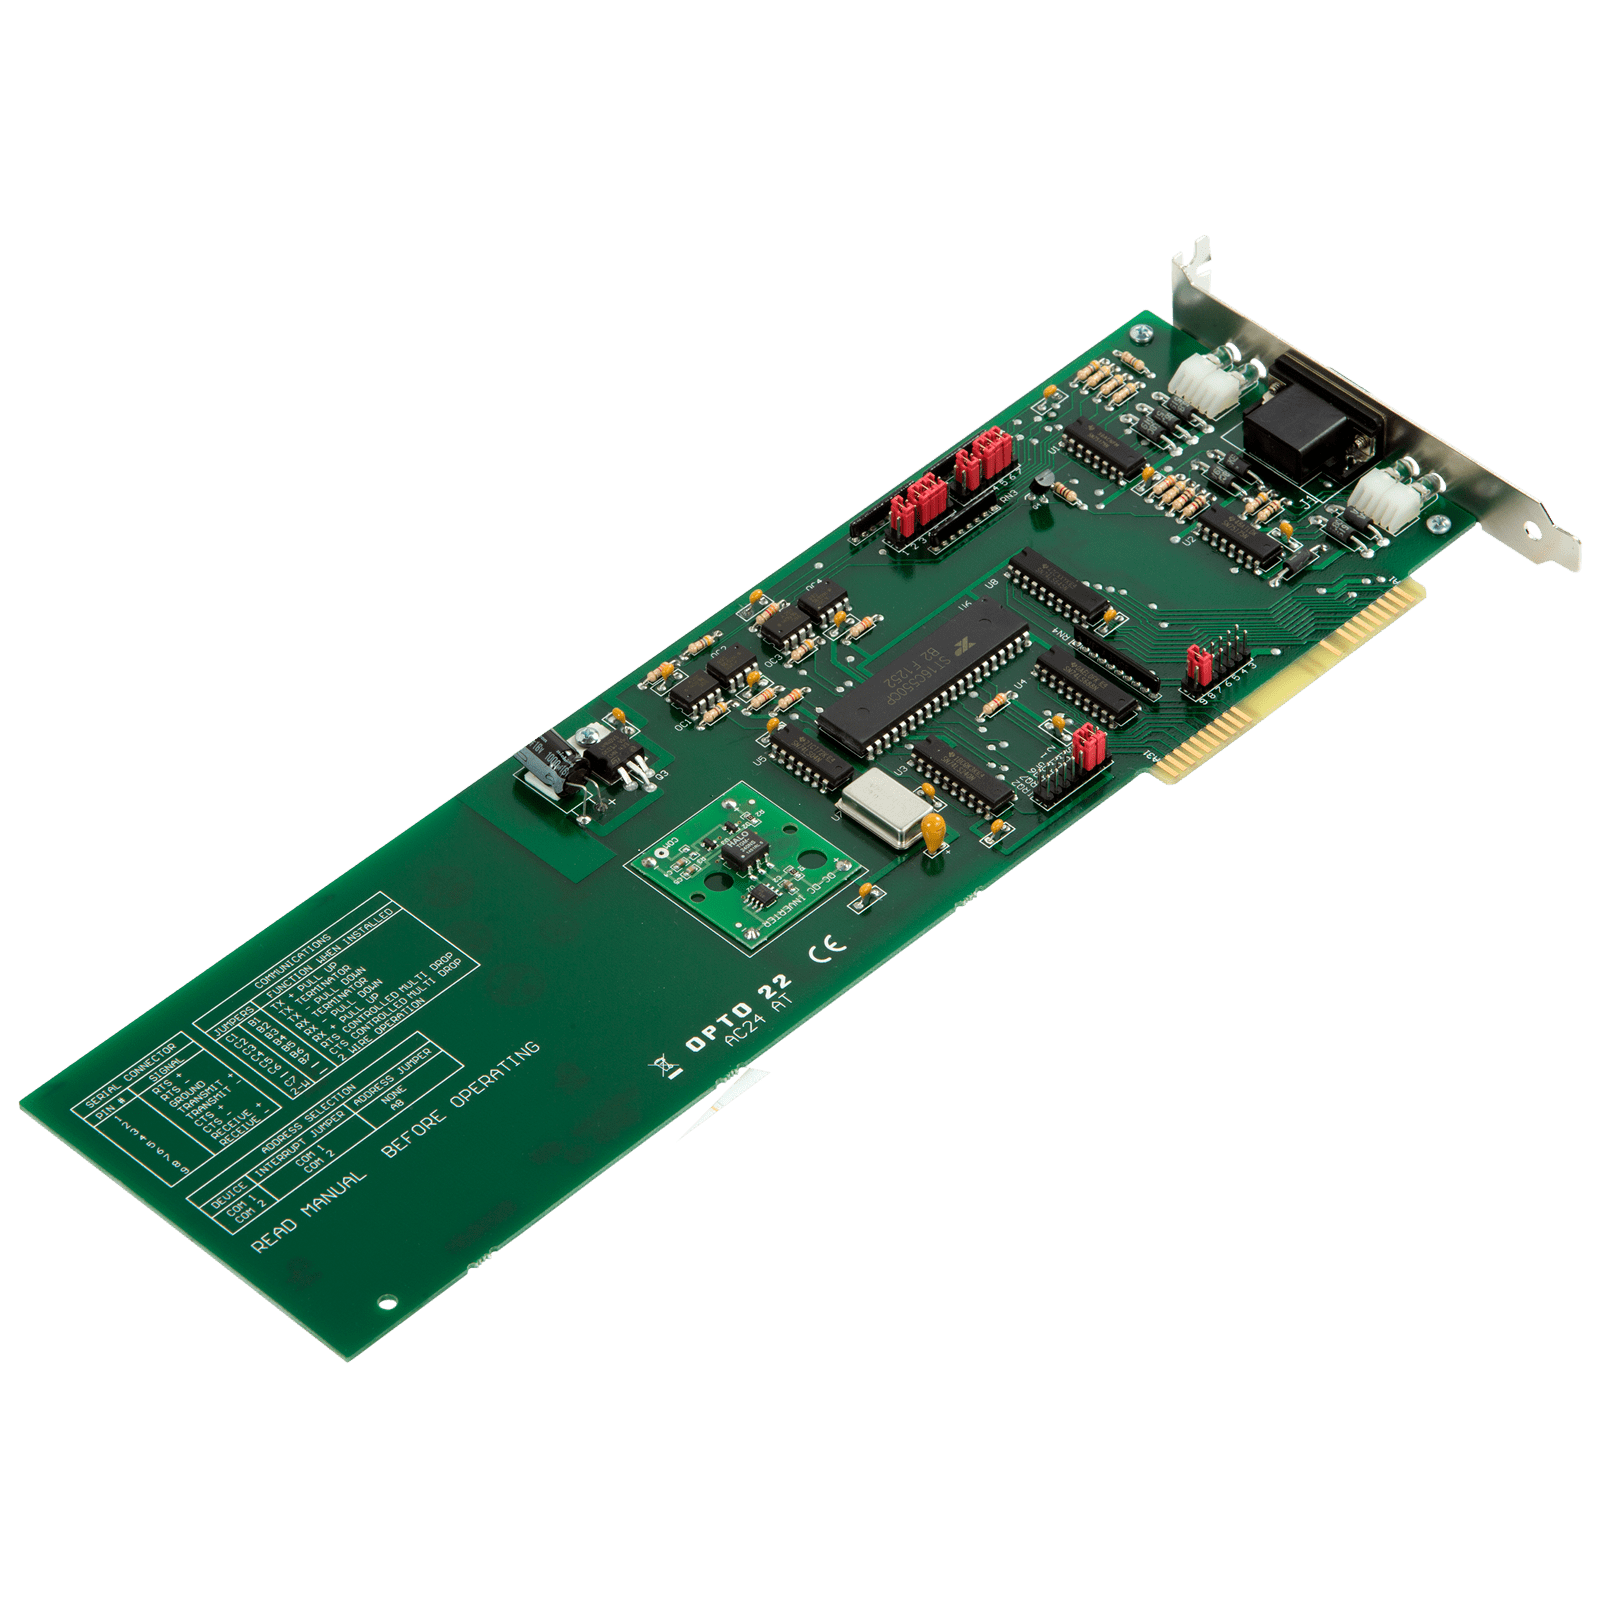 Rs 485 Data Interface Gives Isolated Full Duplex Operation